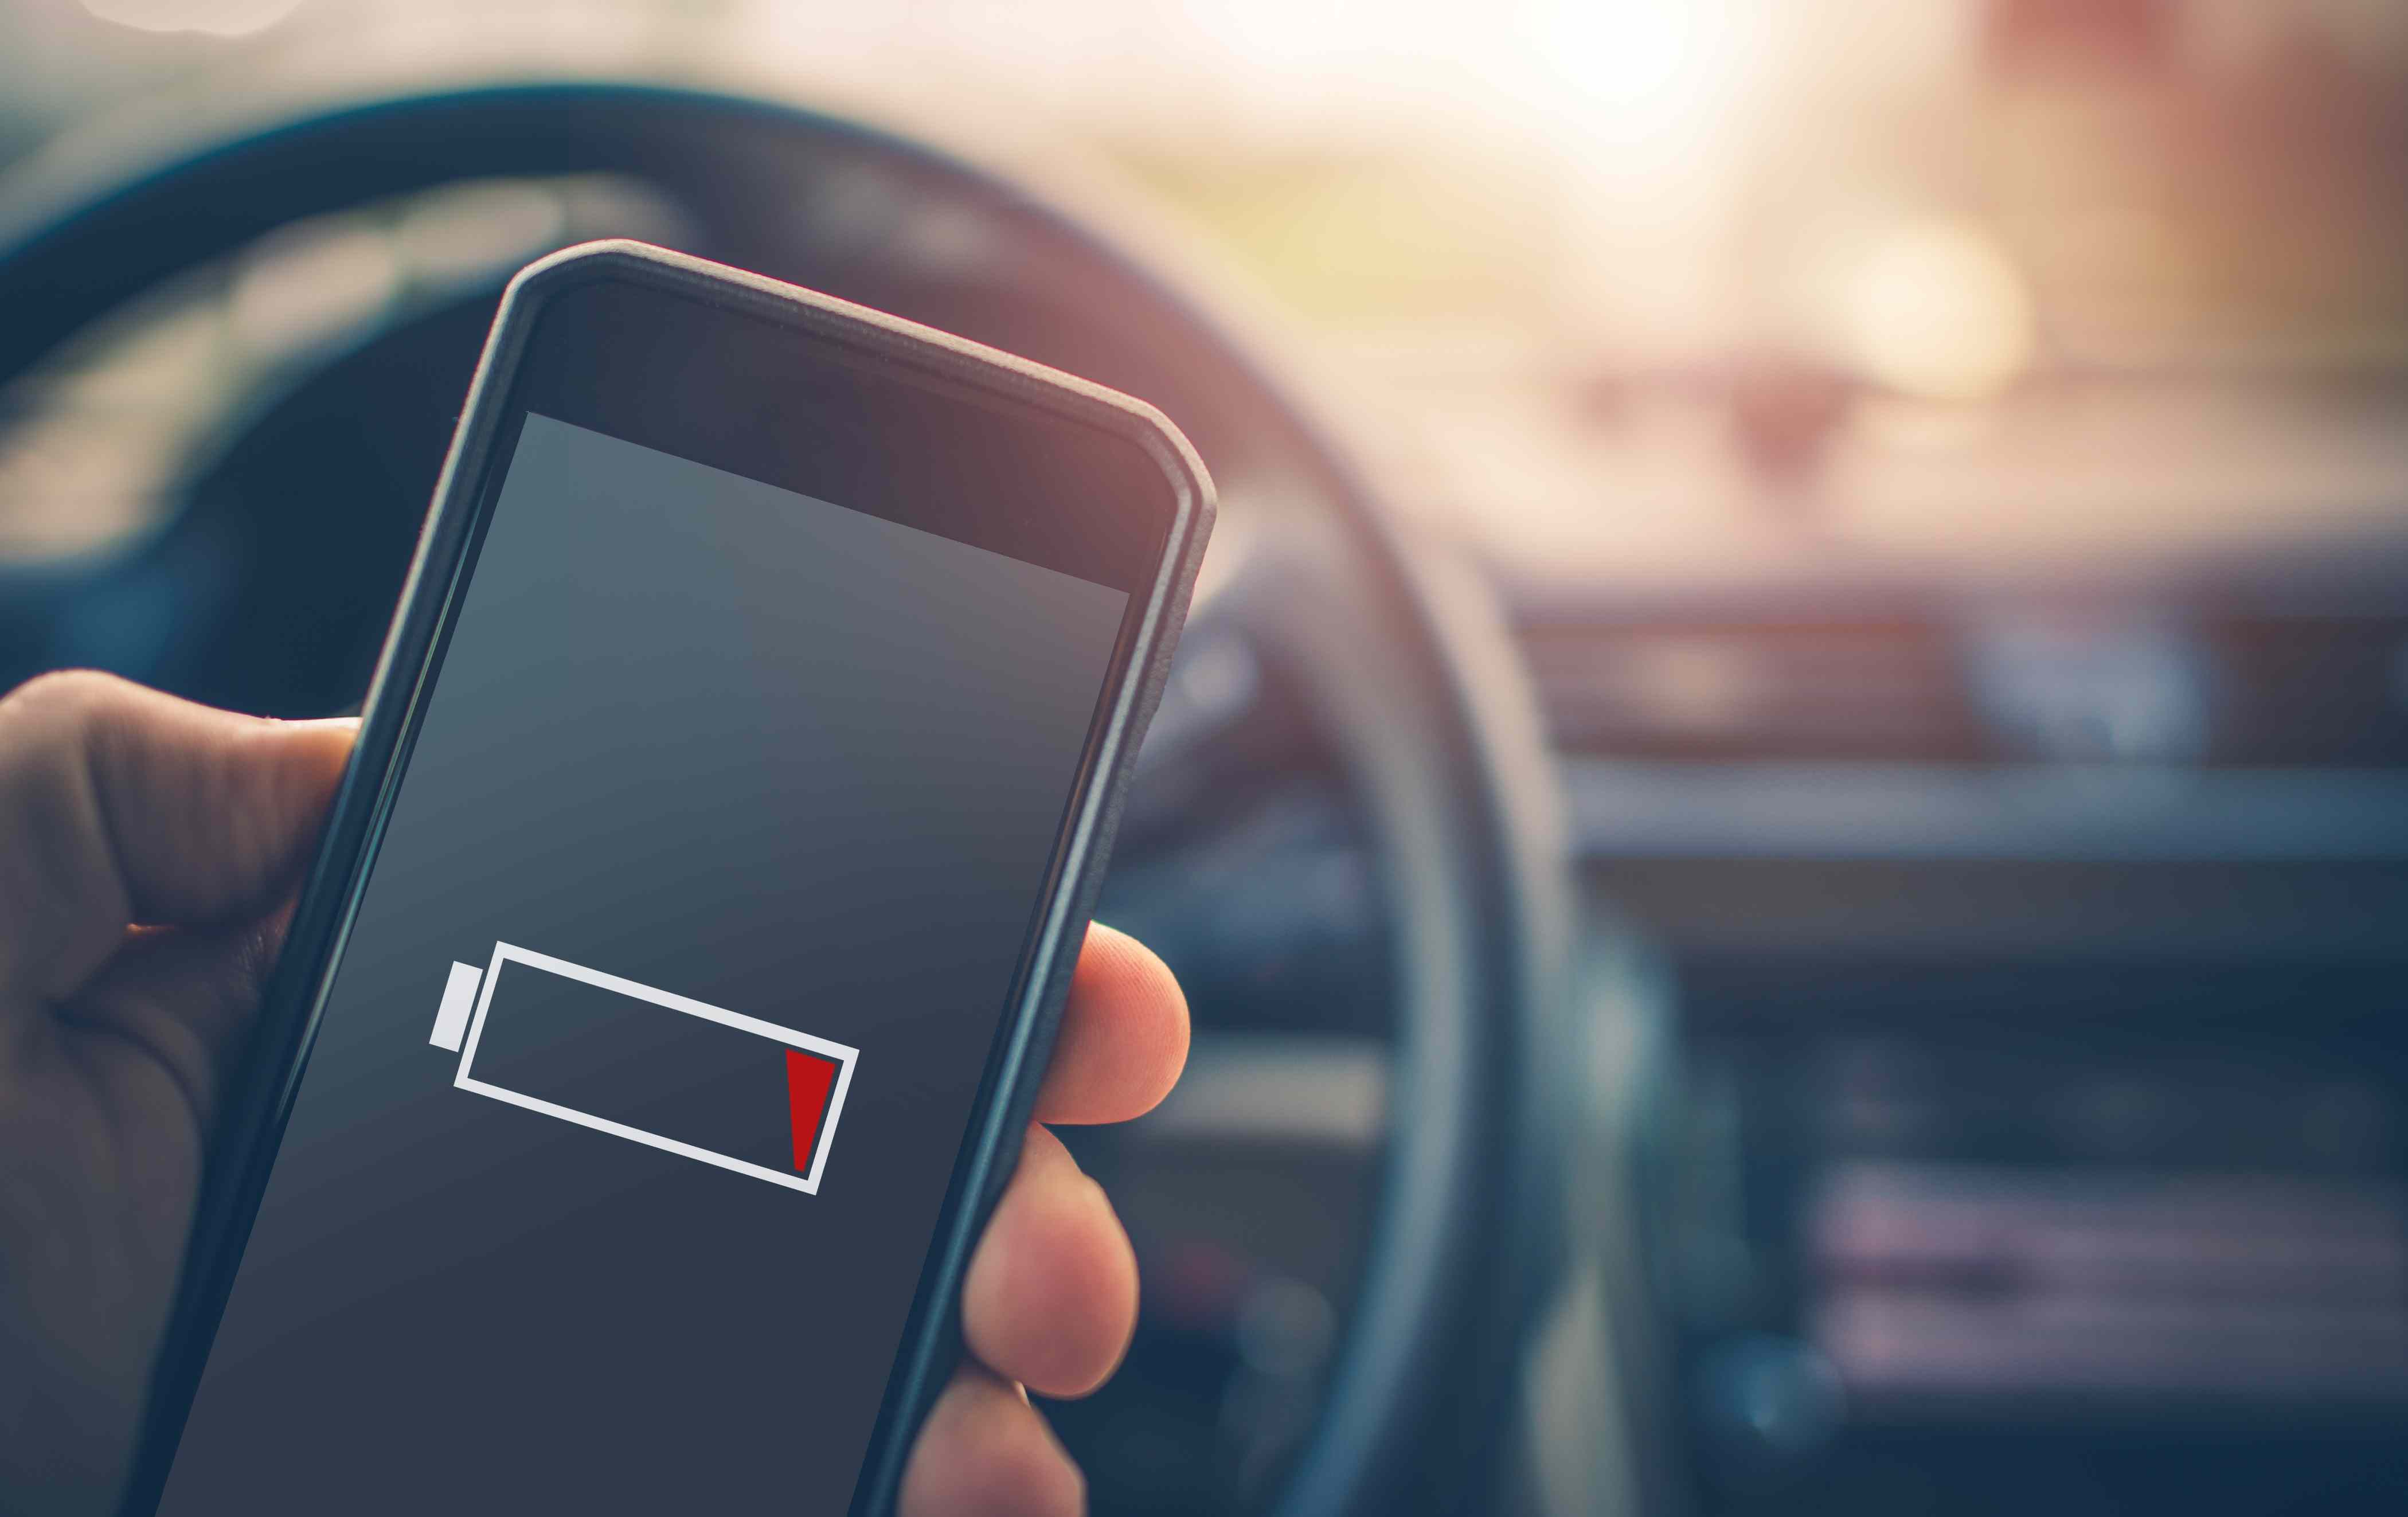 A hand holds a phone with a dead battery in a car